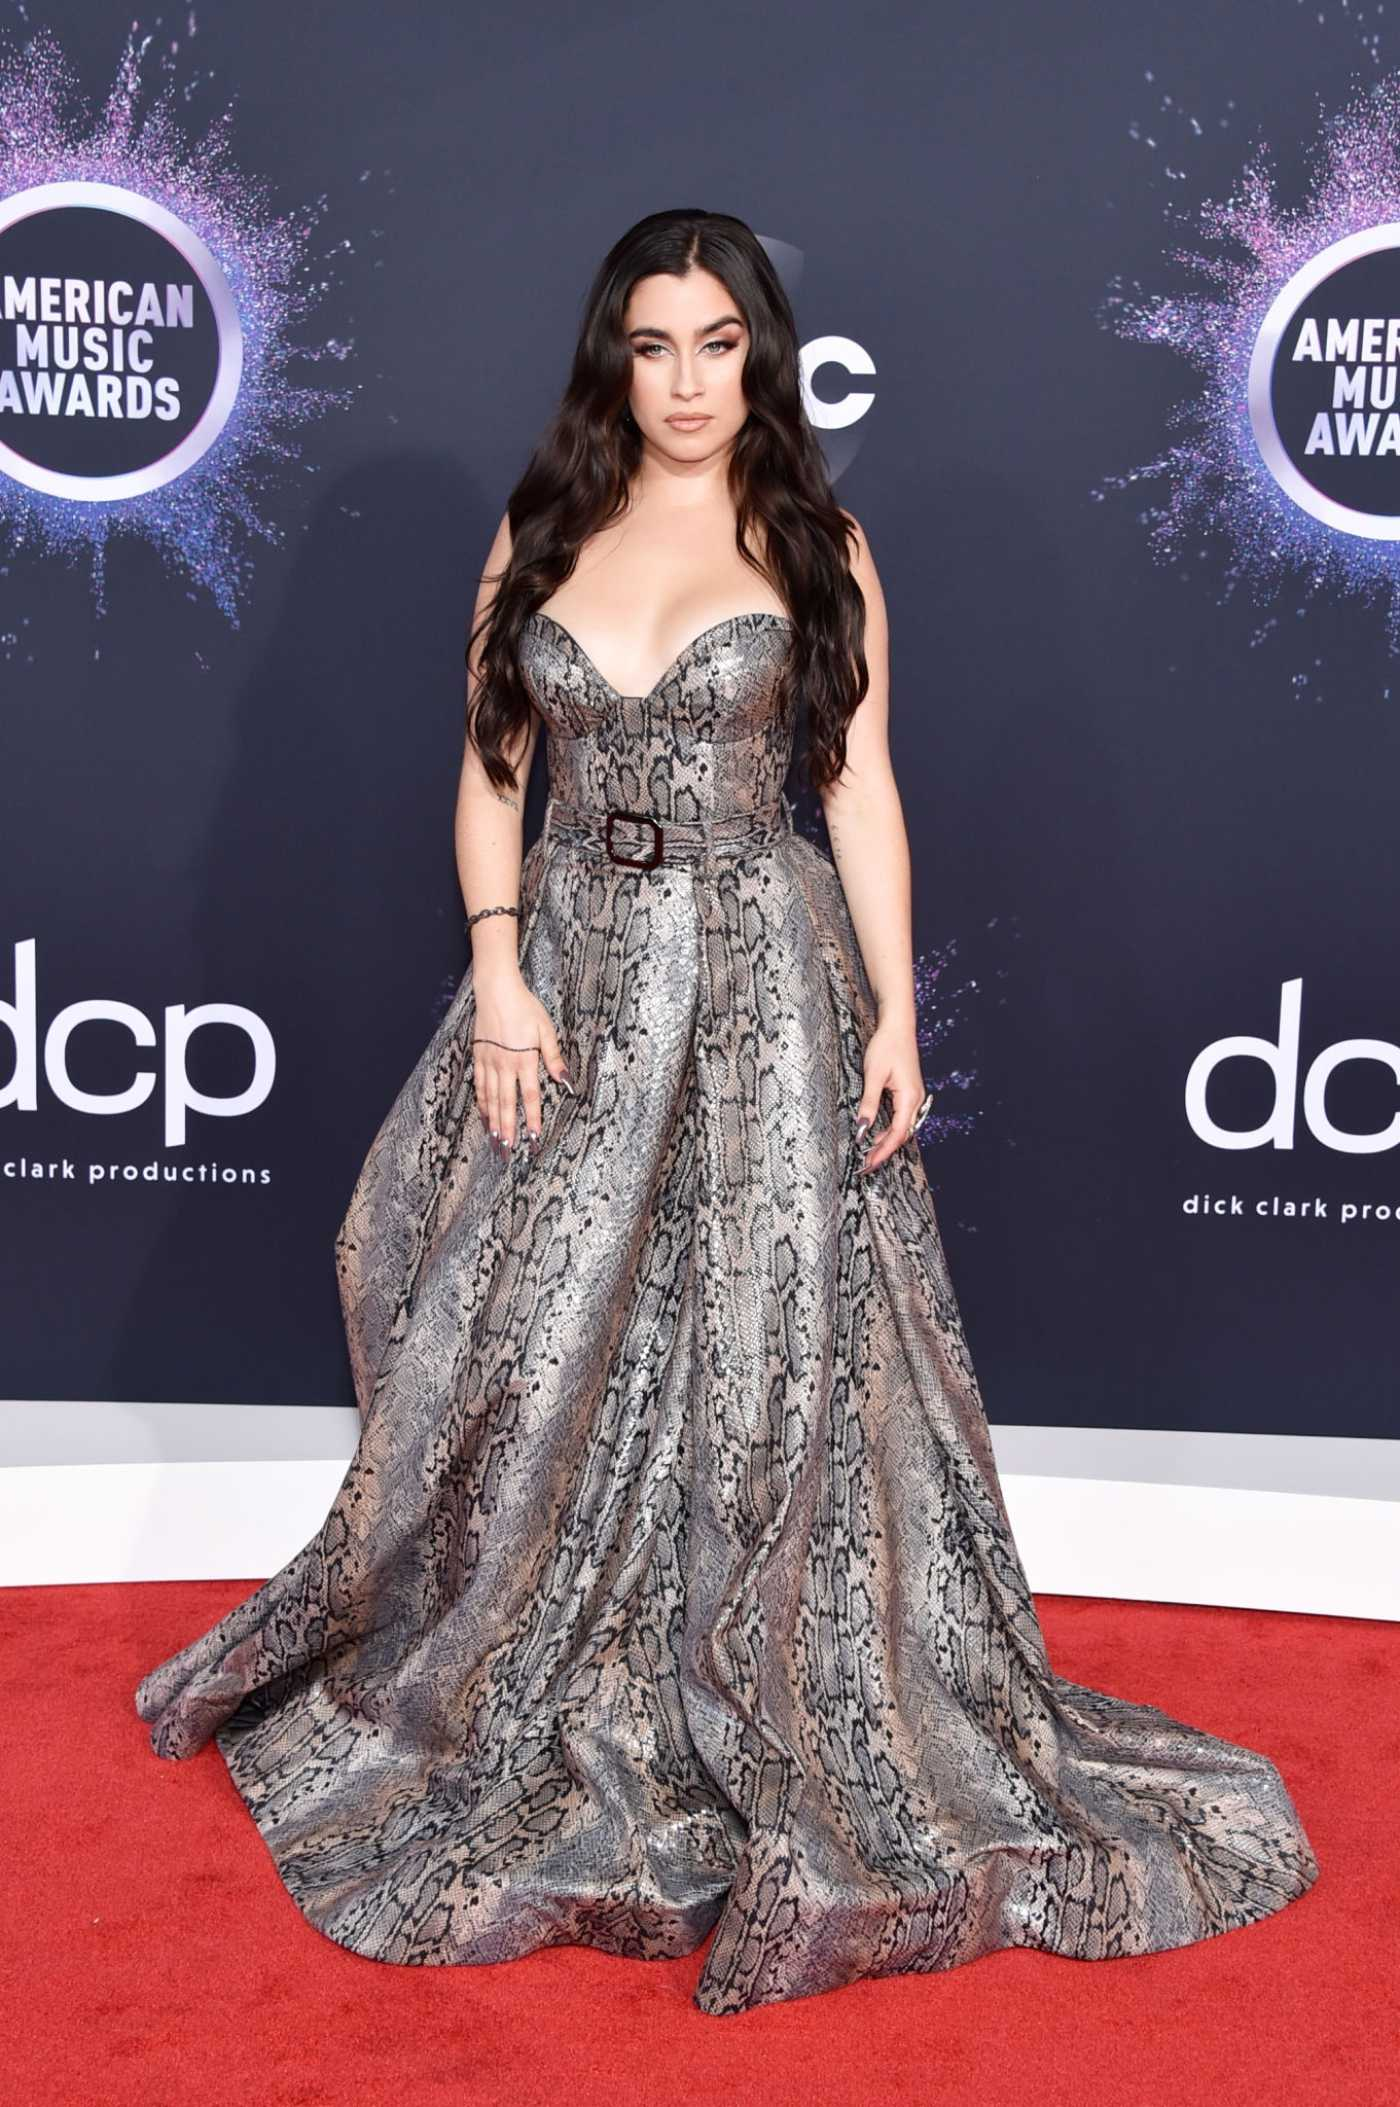 Lauren Jauregui Attends the 2019 American Music Awards at Microsoft Theater in Los Angeles 11/24/2019